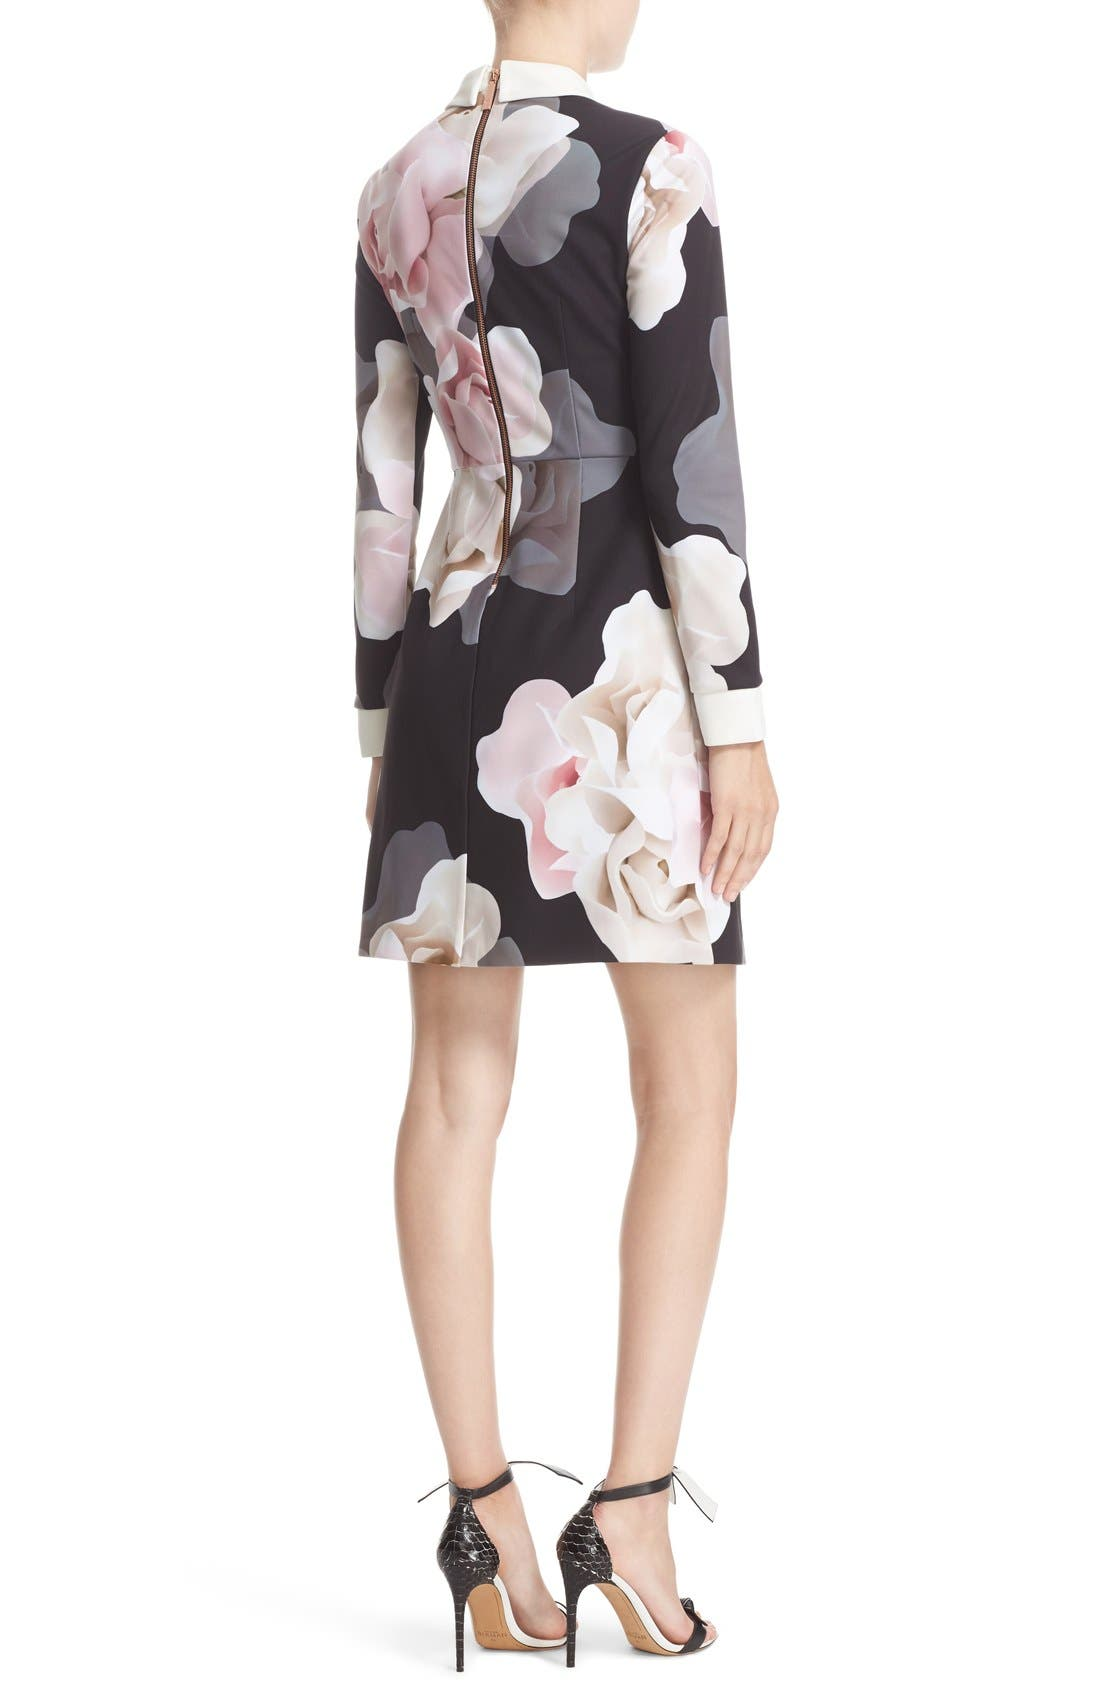 TED BAKER LONDON,                             Porcelain Rose Print Contrast Trim Fit & Flare Dress,                             Alternate thumbnail 3, color,                             001